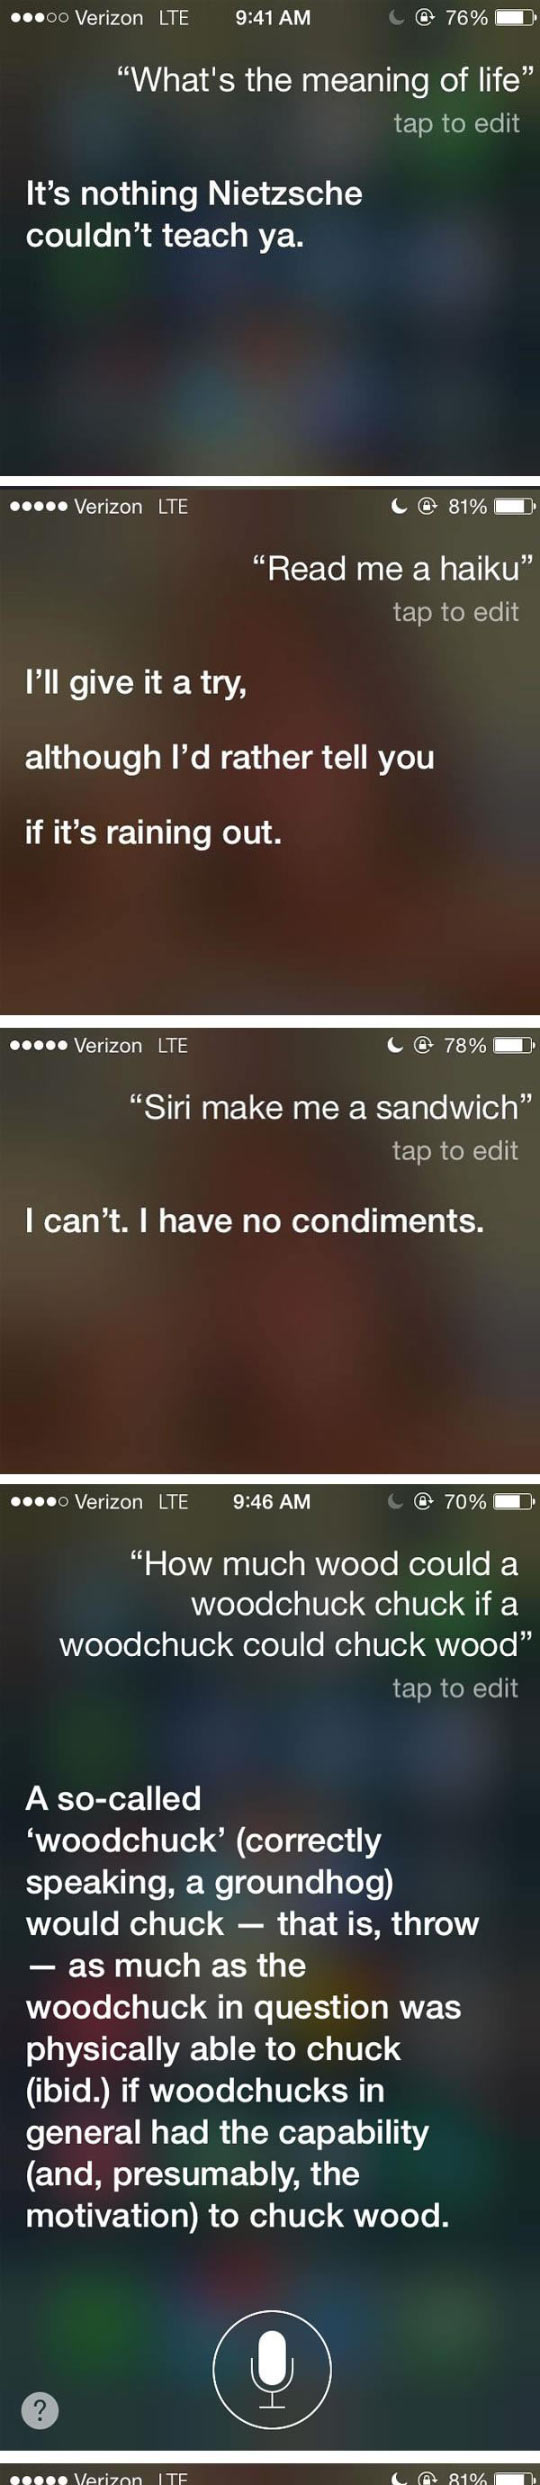 Honest Answers From Siri